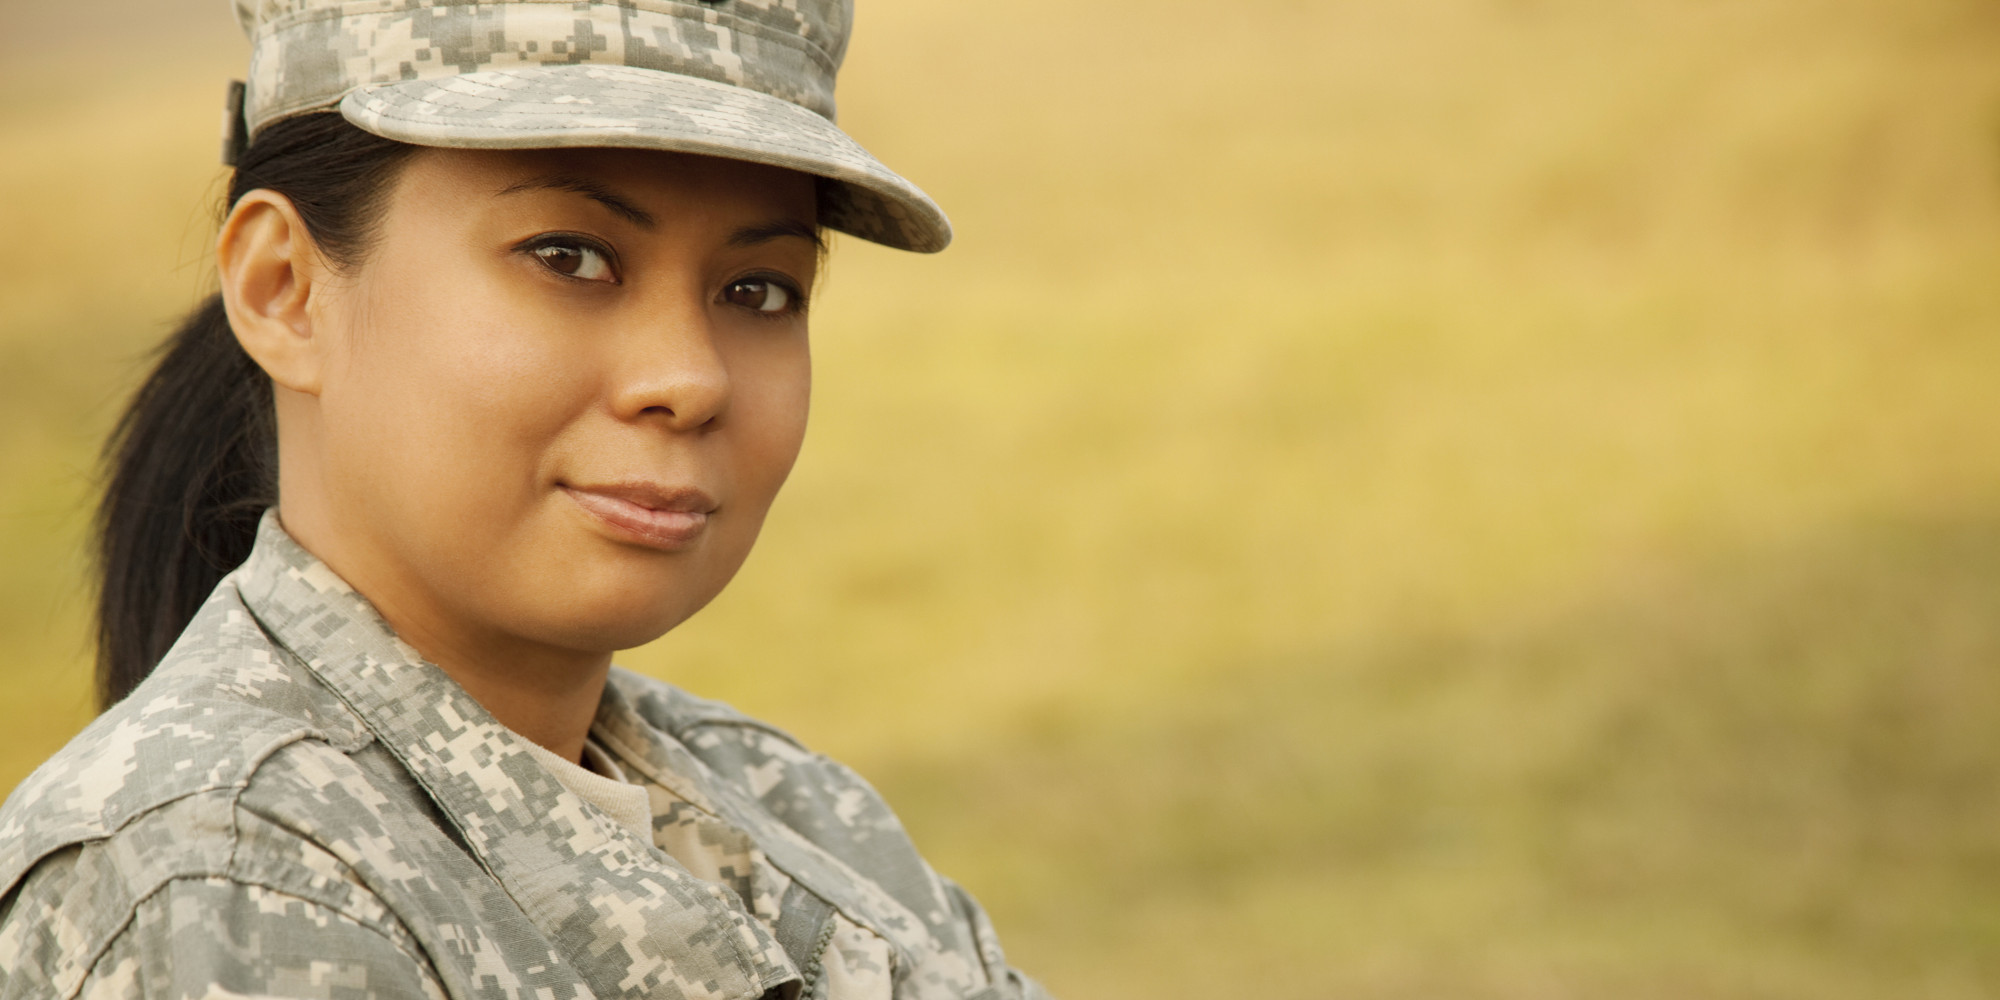 women and the military Media reporting on women in the military plays an important role in cultural change recent research shows australian newspapers focus on scandal and place responsibility on the women involved.